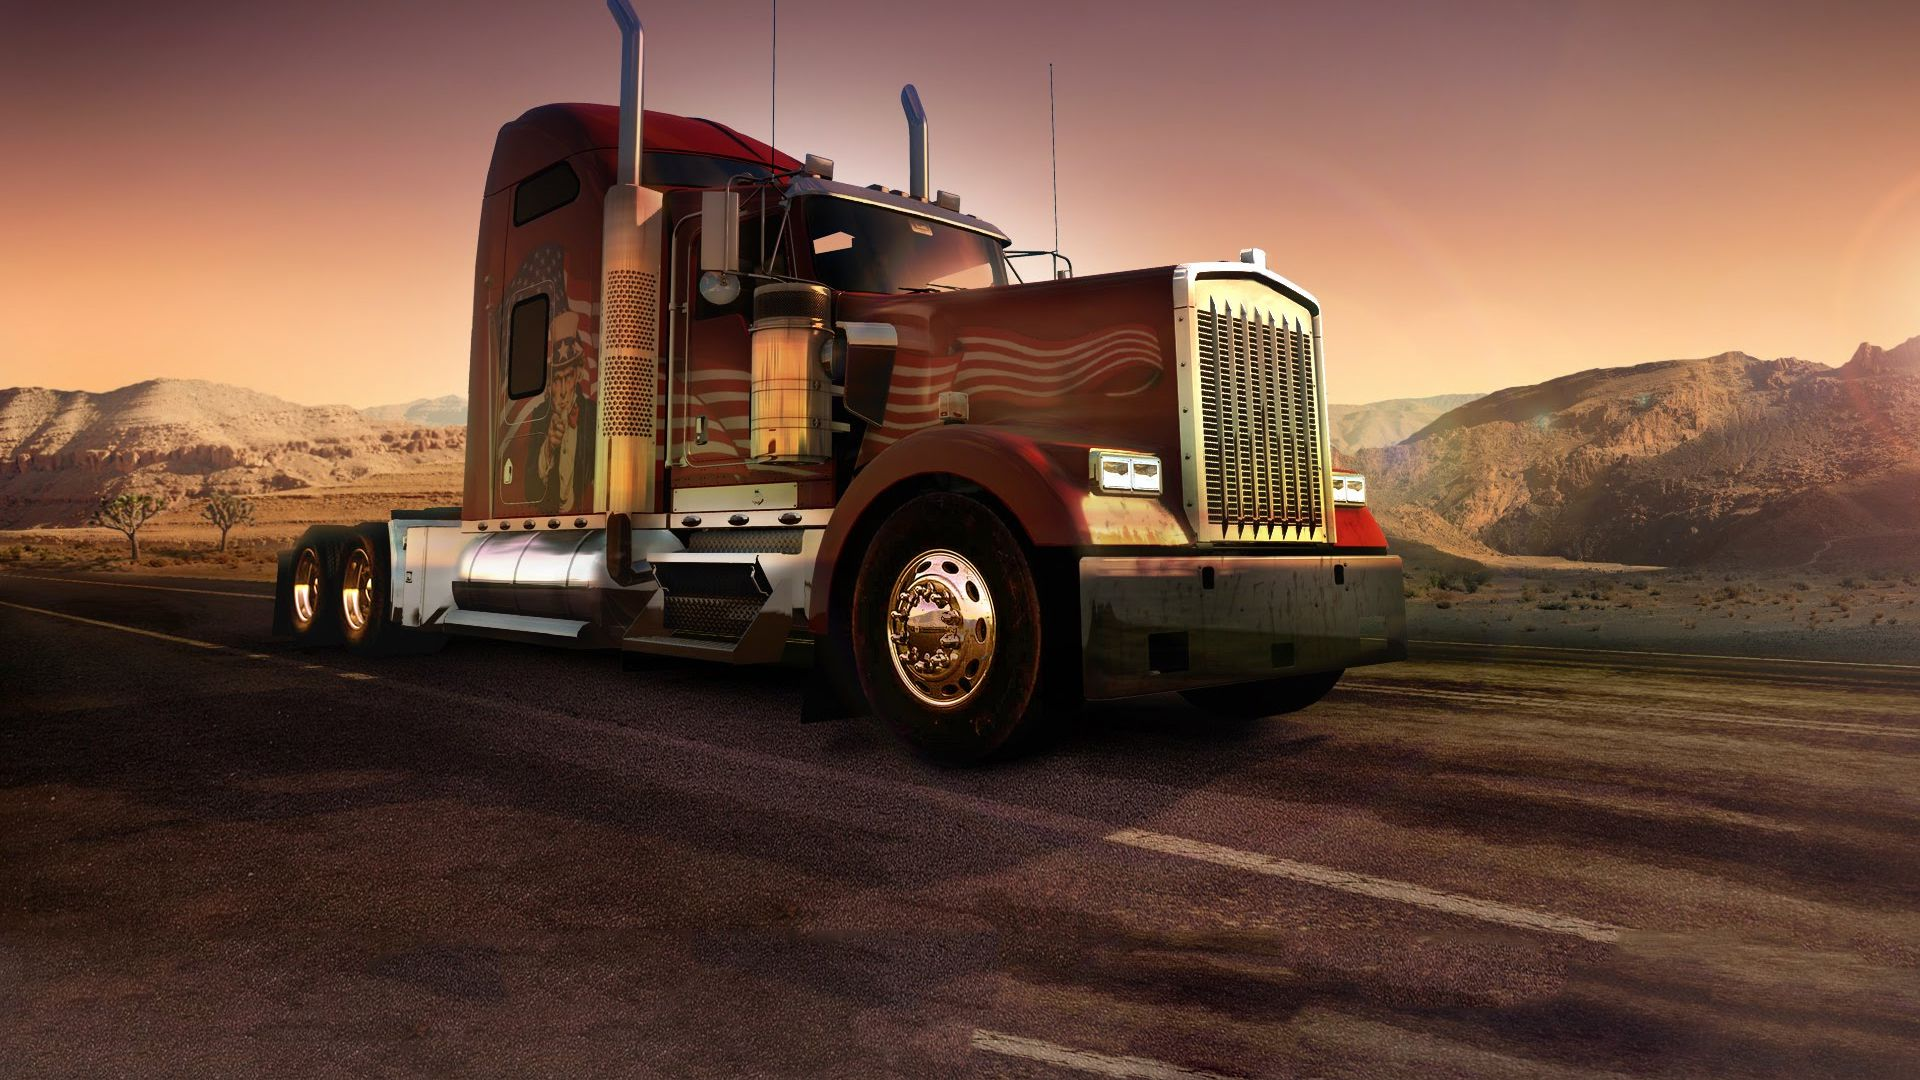 american-truck-simulator-heavy-cargo-pack-dlc-steam-cd-key-satin-al-durmaplay.jpg